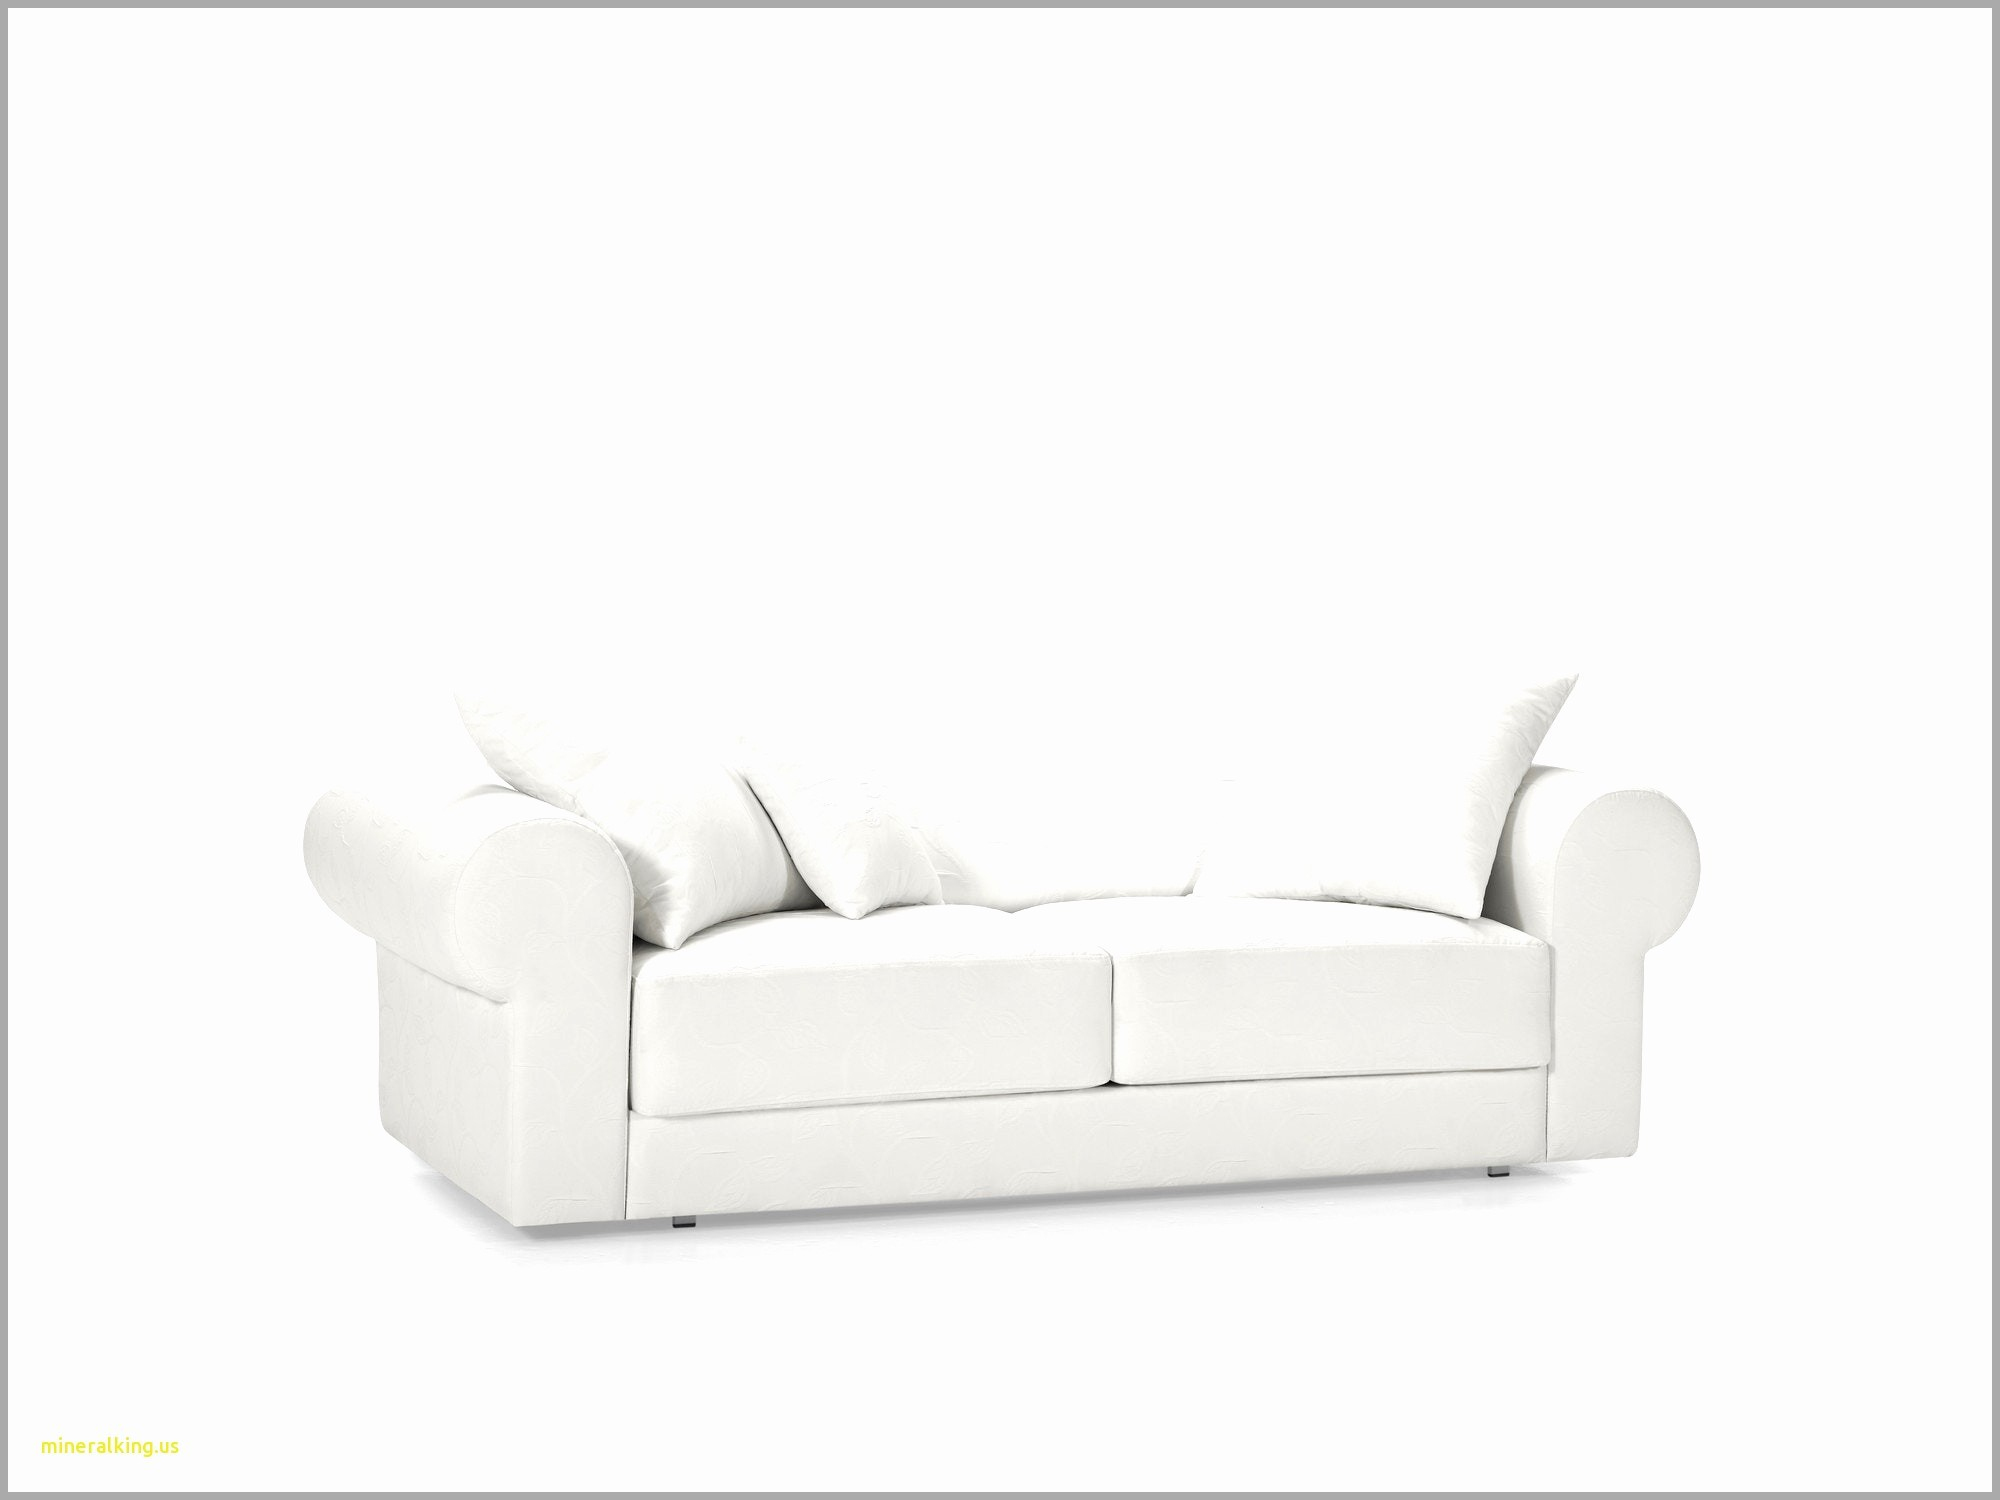 Ikea Canapé D Angle Convertible Frais Image Canap Blanc Good Canape D Angle Places Avec Canap N to Madrid Gris